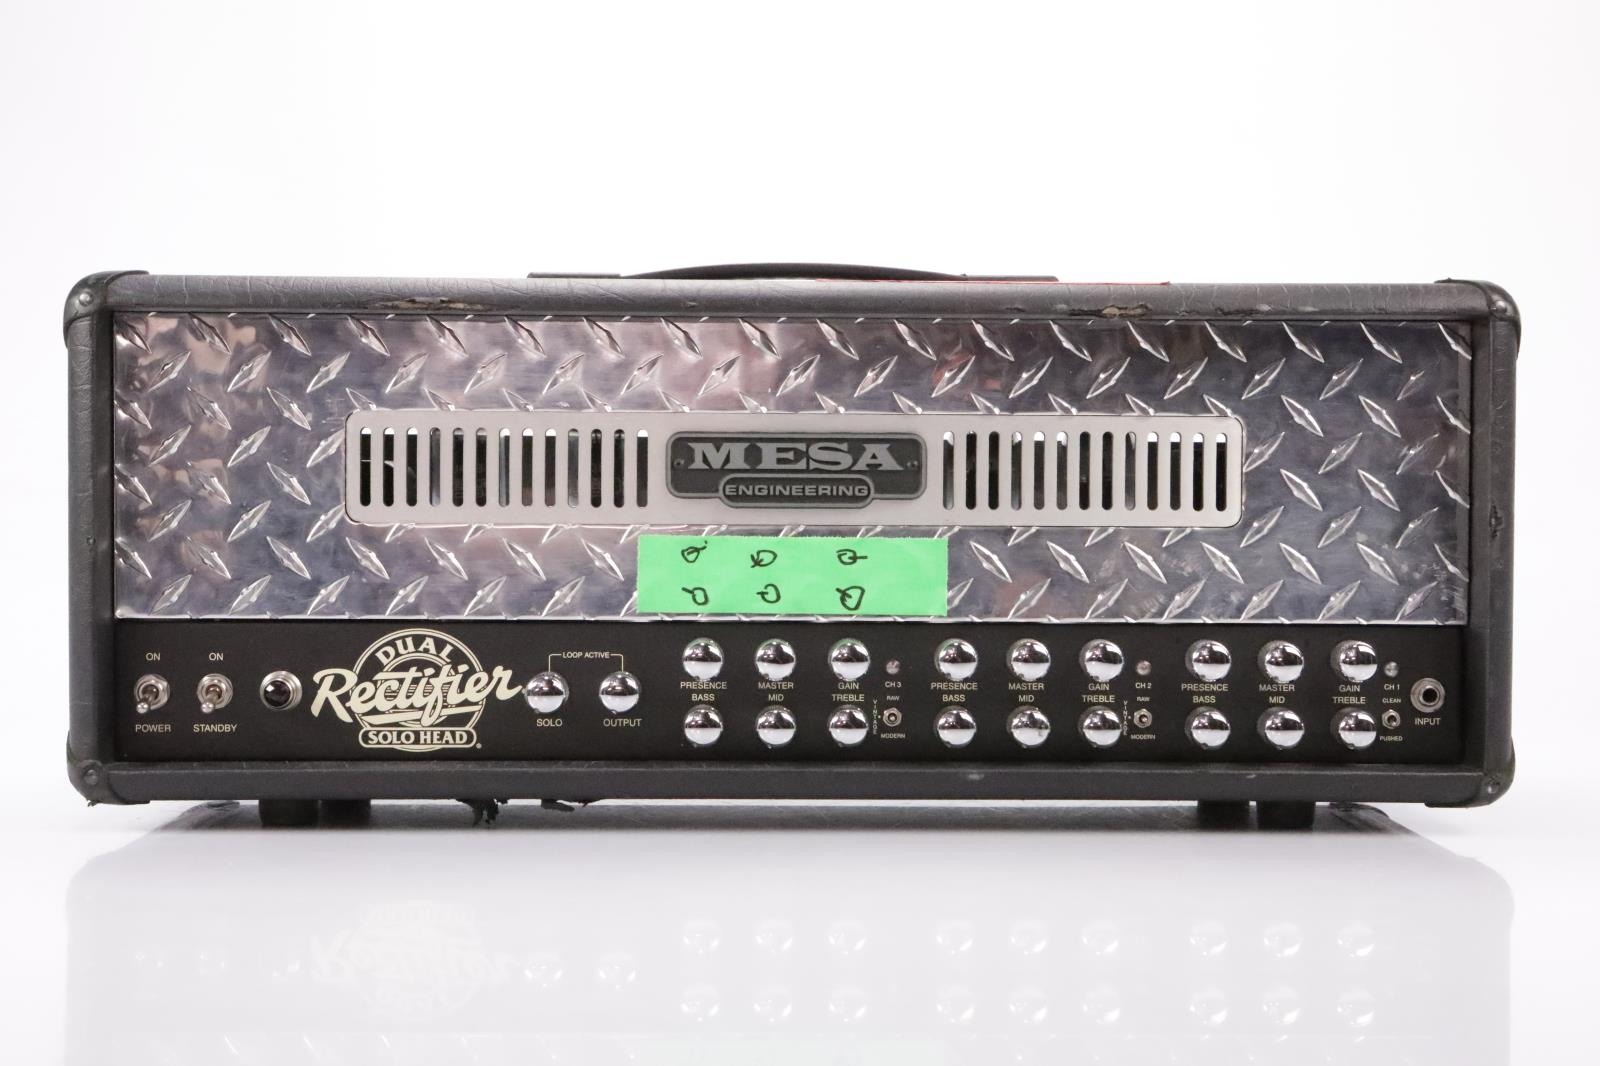 Mesa Boogie Dual Rectifier Solo Head 100 watt Tube Amp Owned by Satyricon #35070